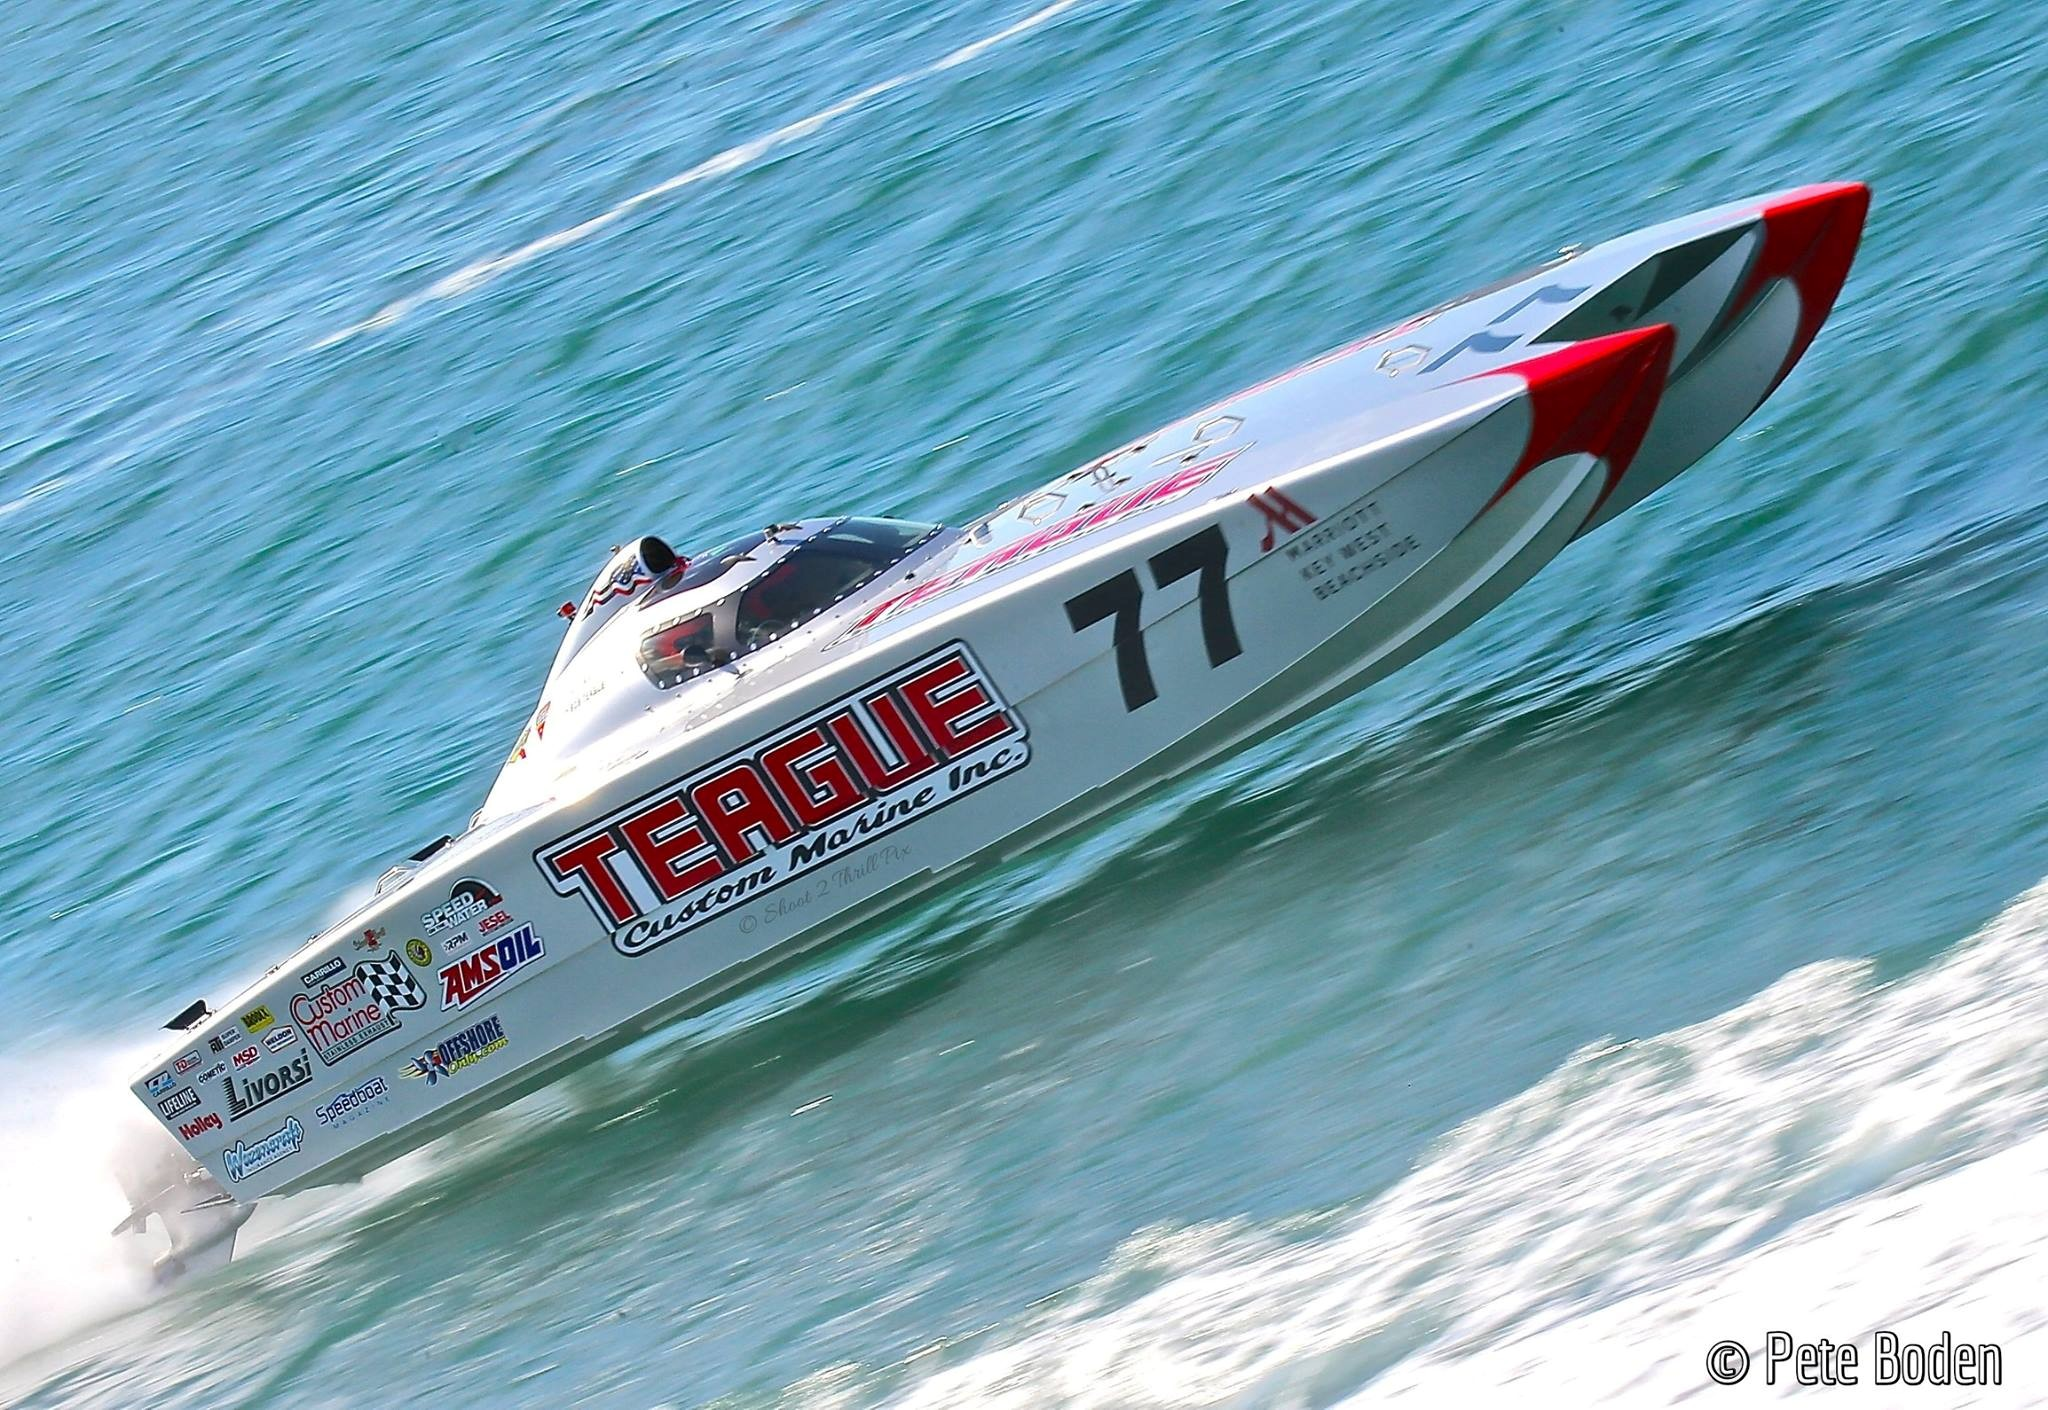 Veteran offshore racer and engine builder Bob Teague is the high-performance marine world's ultimate answer man. Photo courtesy/copyright Pete Boden/Shoot 2 Thrill Pix.